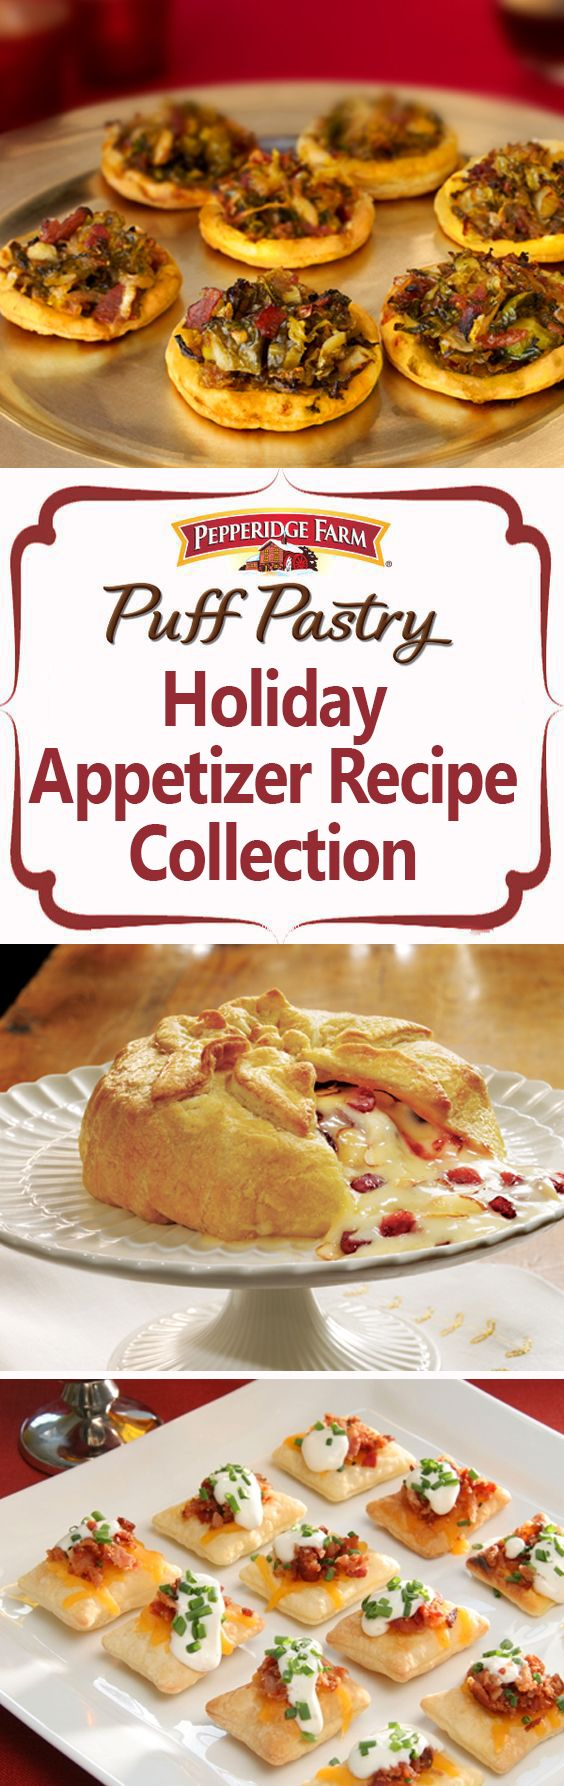 Pepperidge Farm Puff Pastry Holiday Appetizer Recipe Collection Tis The Season To Celebrate With Appetizer Recipes Holiday Appetizers Recipes Holiday Recipes